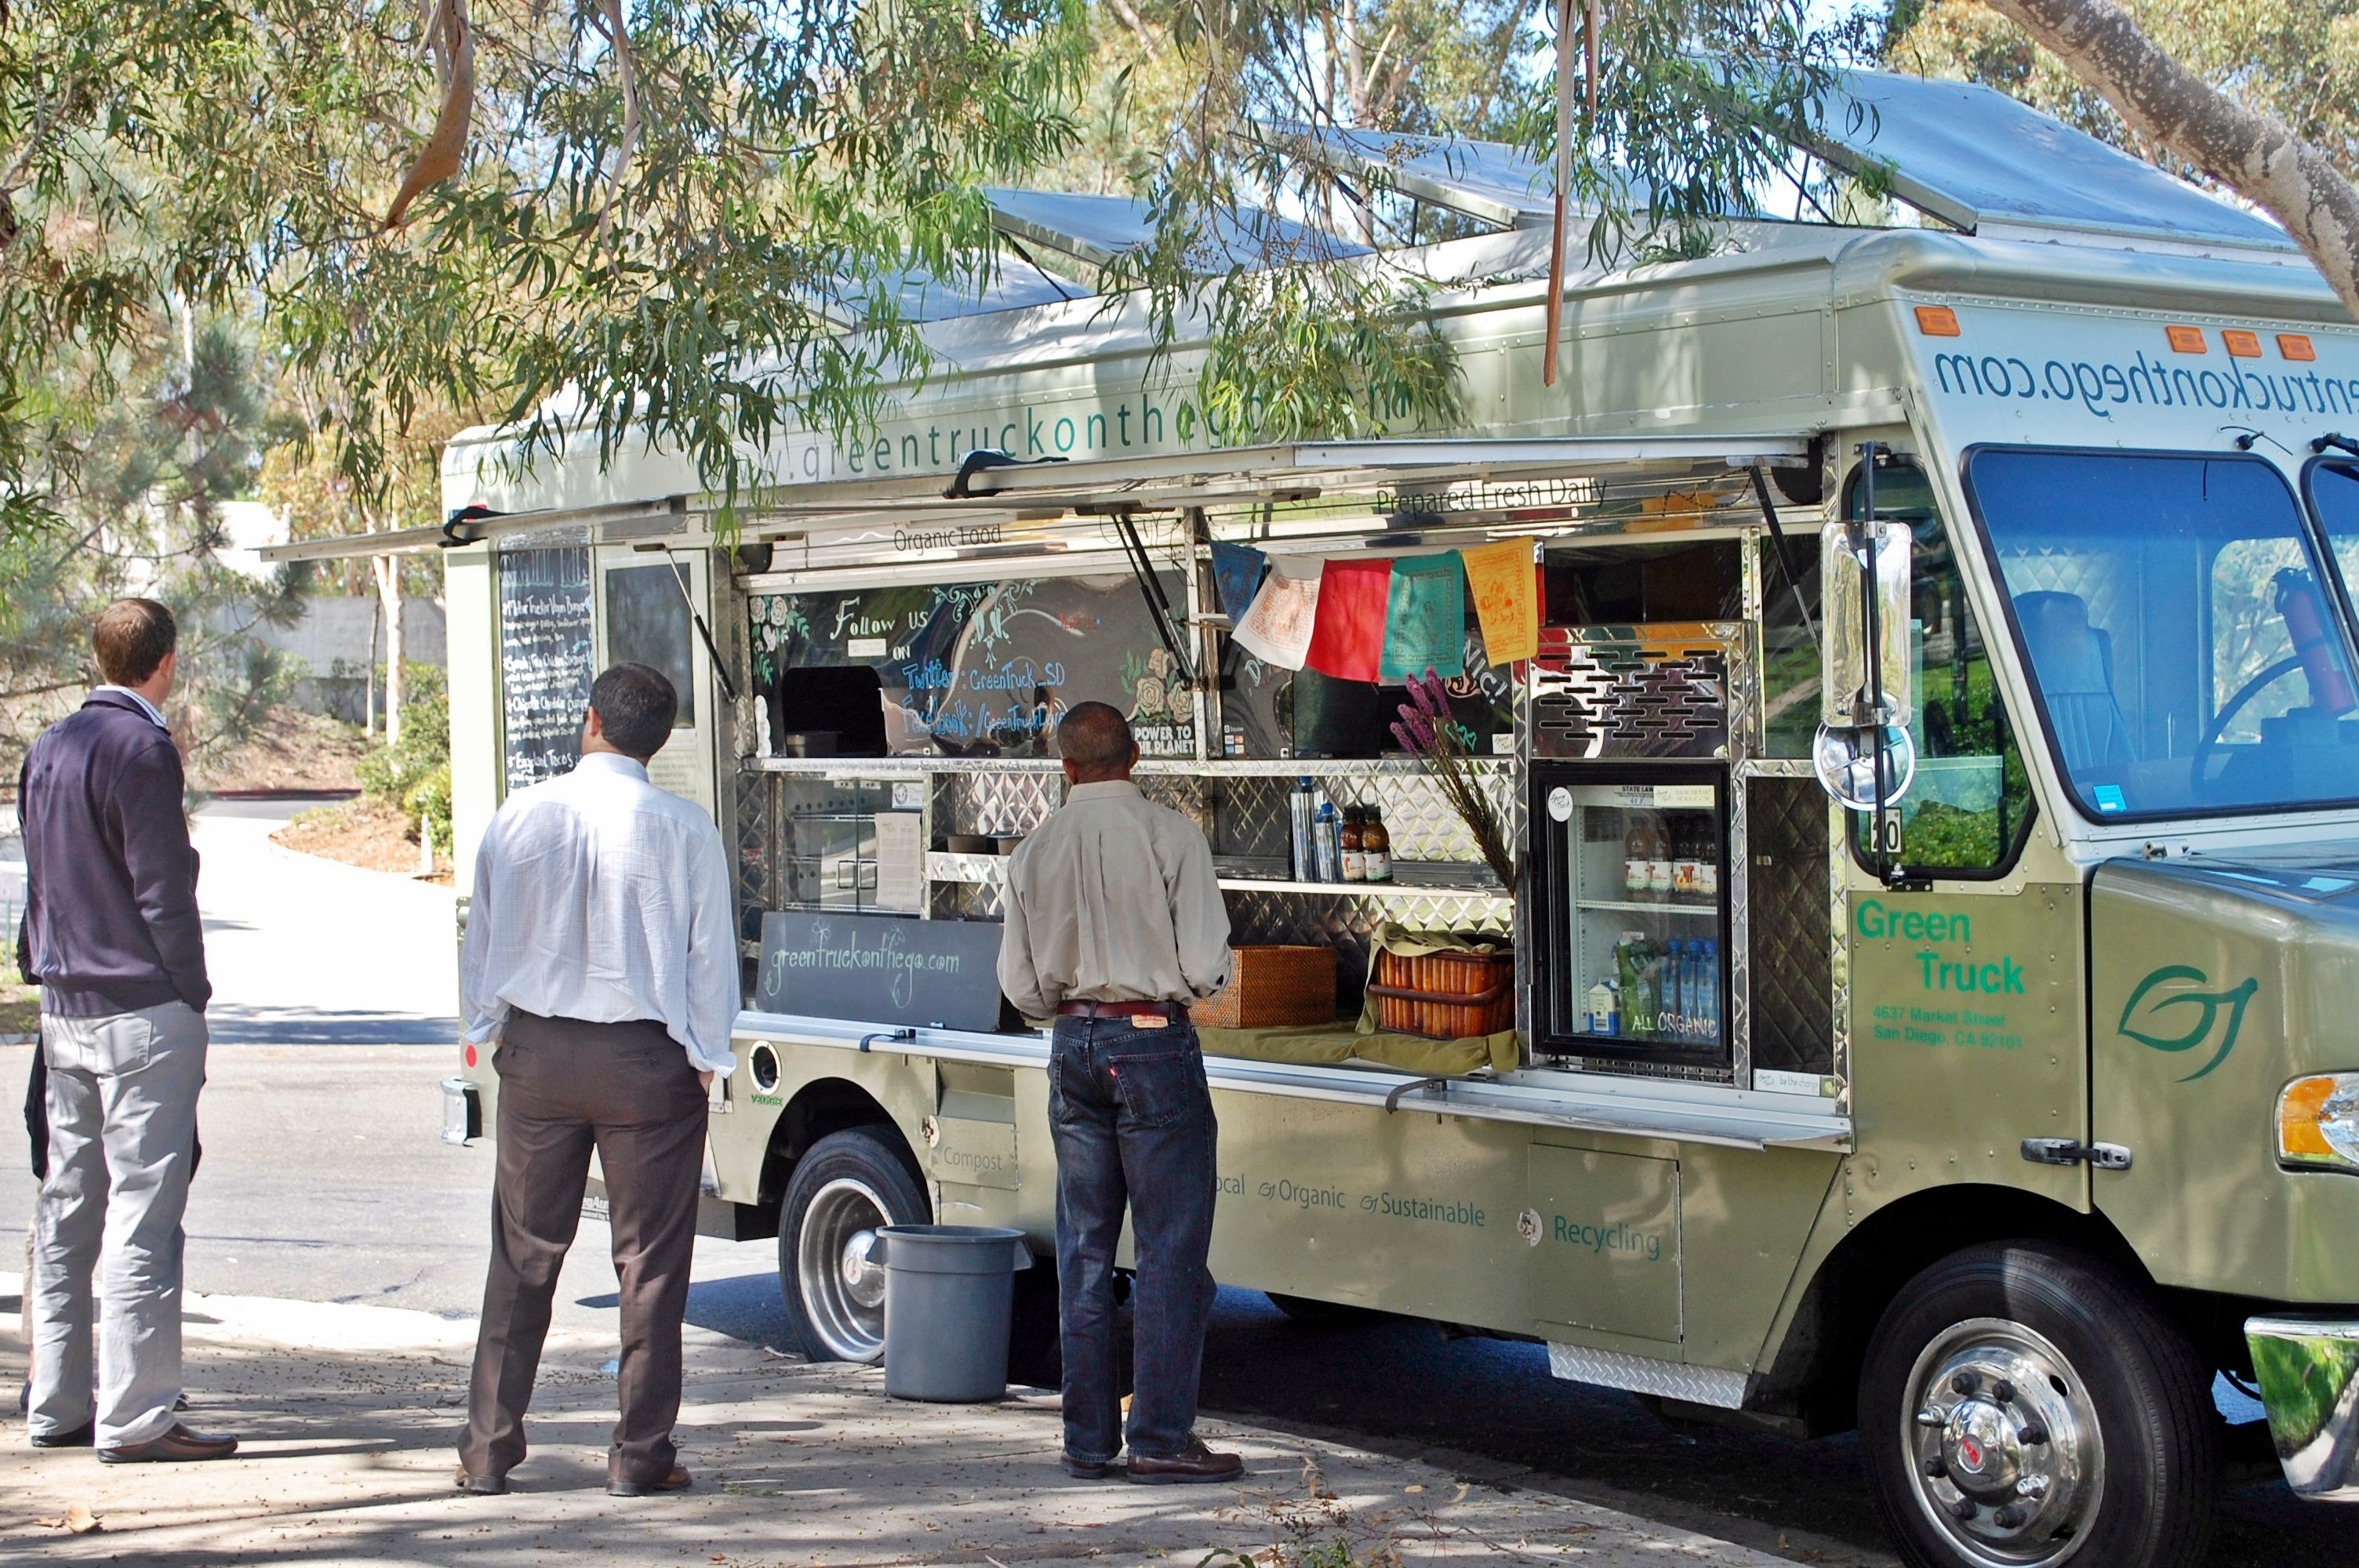 Mangia mangia mobile put the same passion in their food as